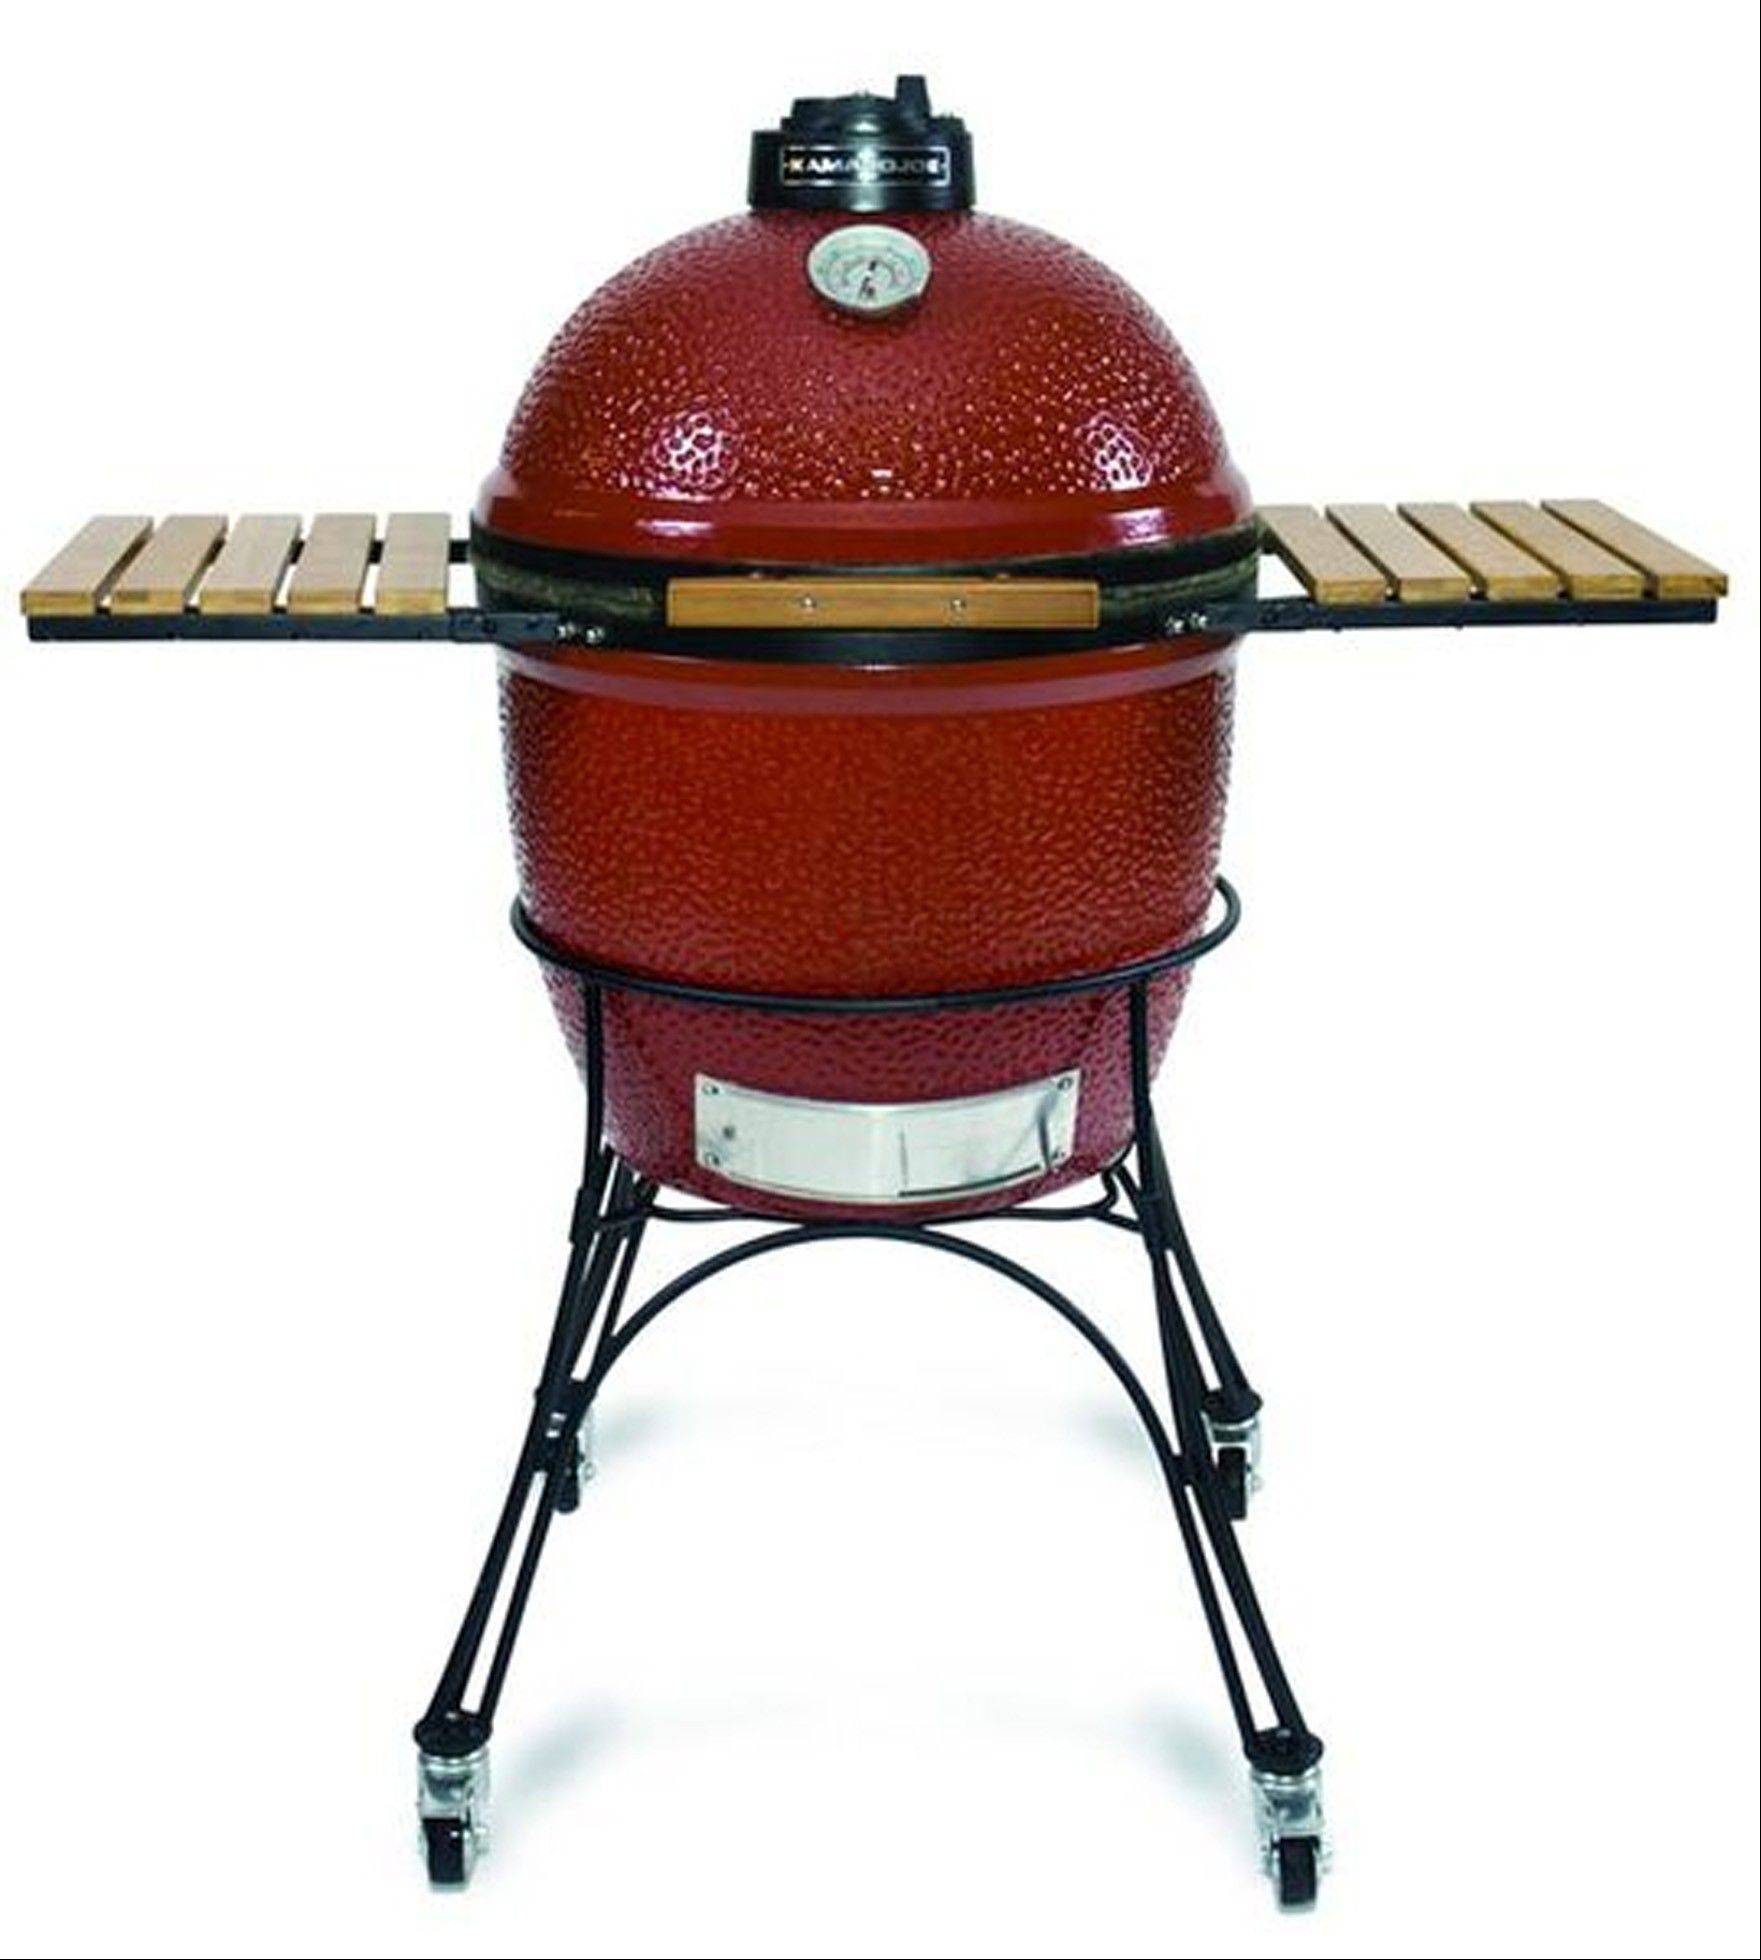 A Kamodo Joe ceramic cooker would make a nice substitute for the reader's kettle grill.